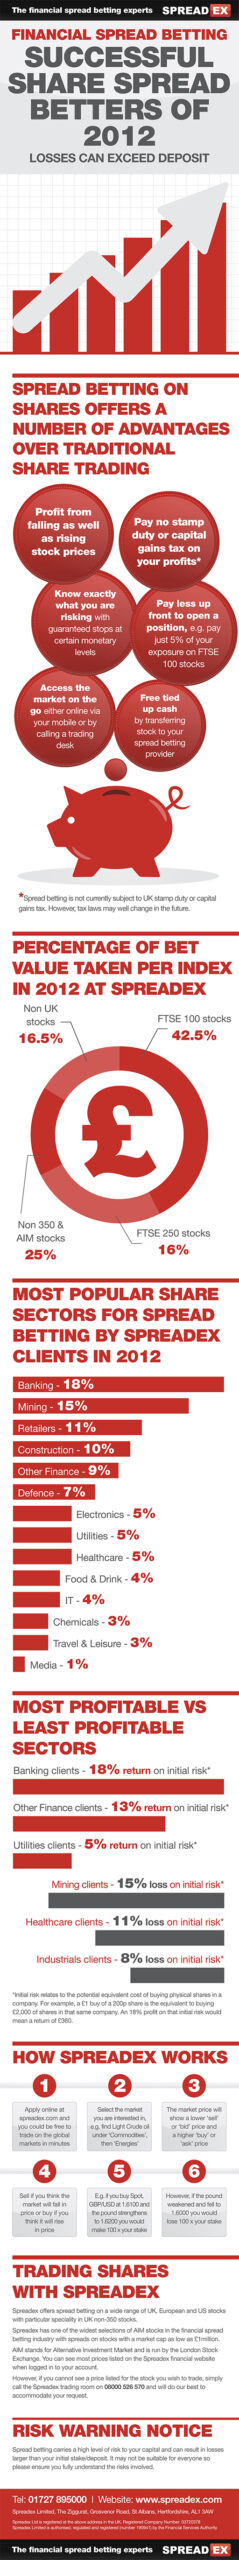 Share Trading vs Spread Betting Infographic